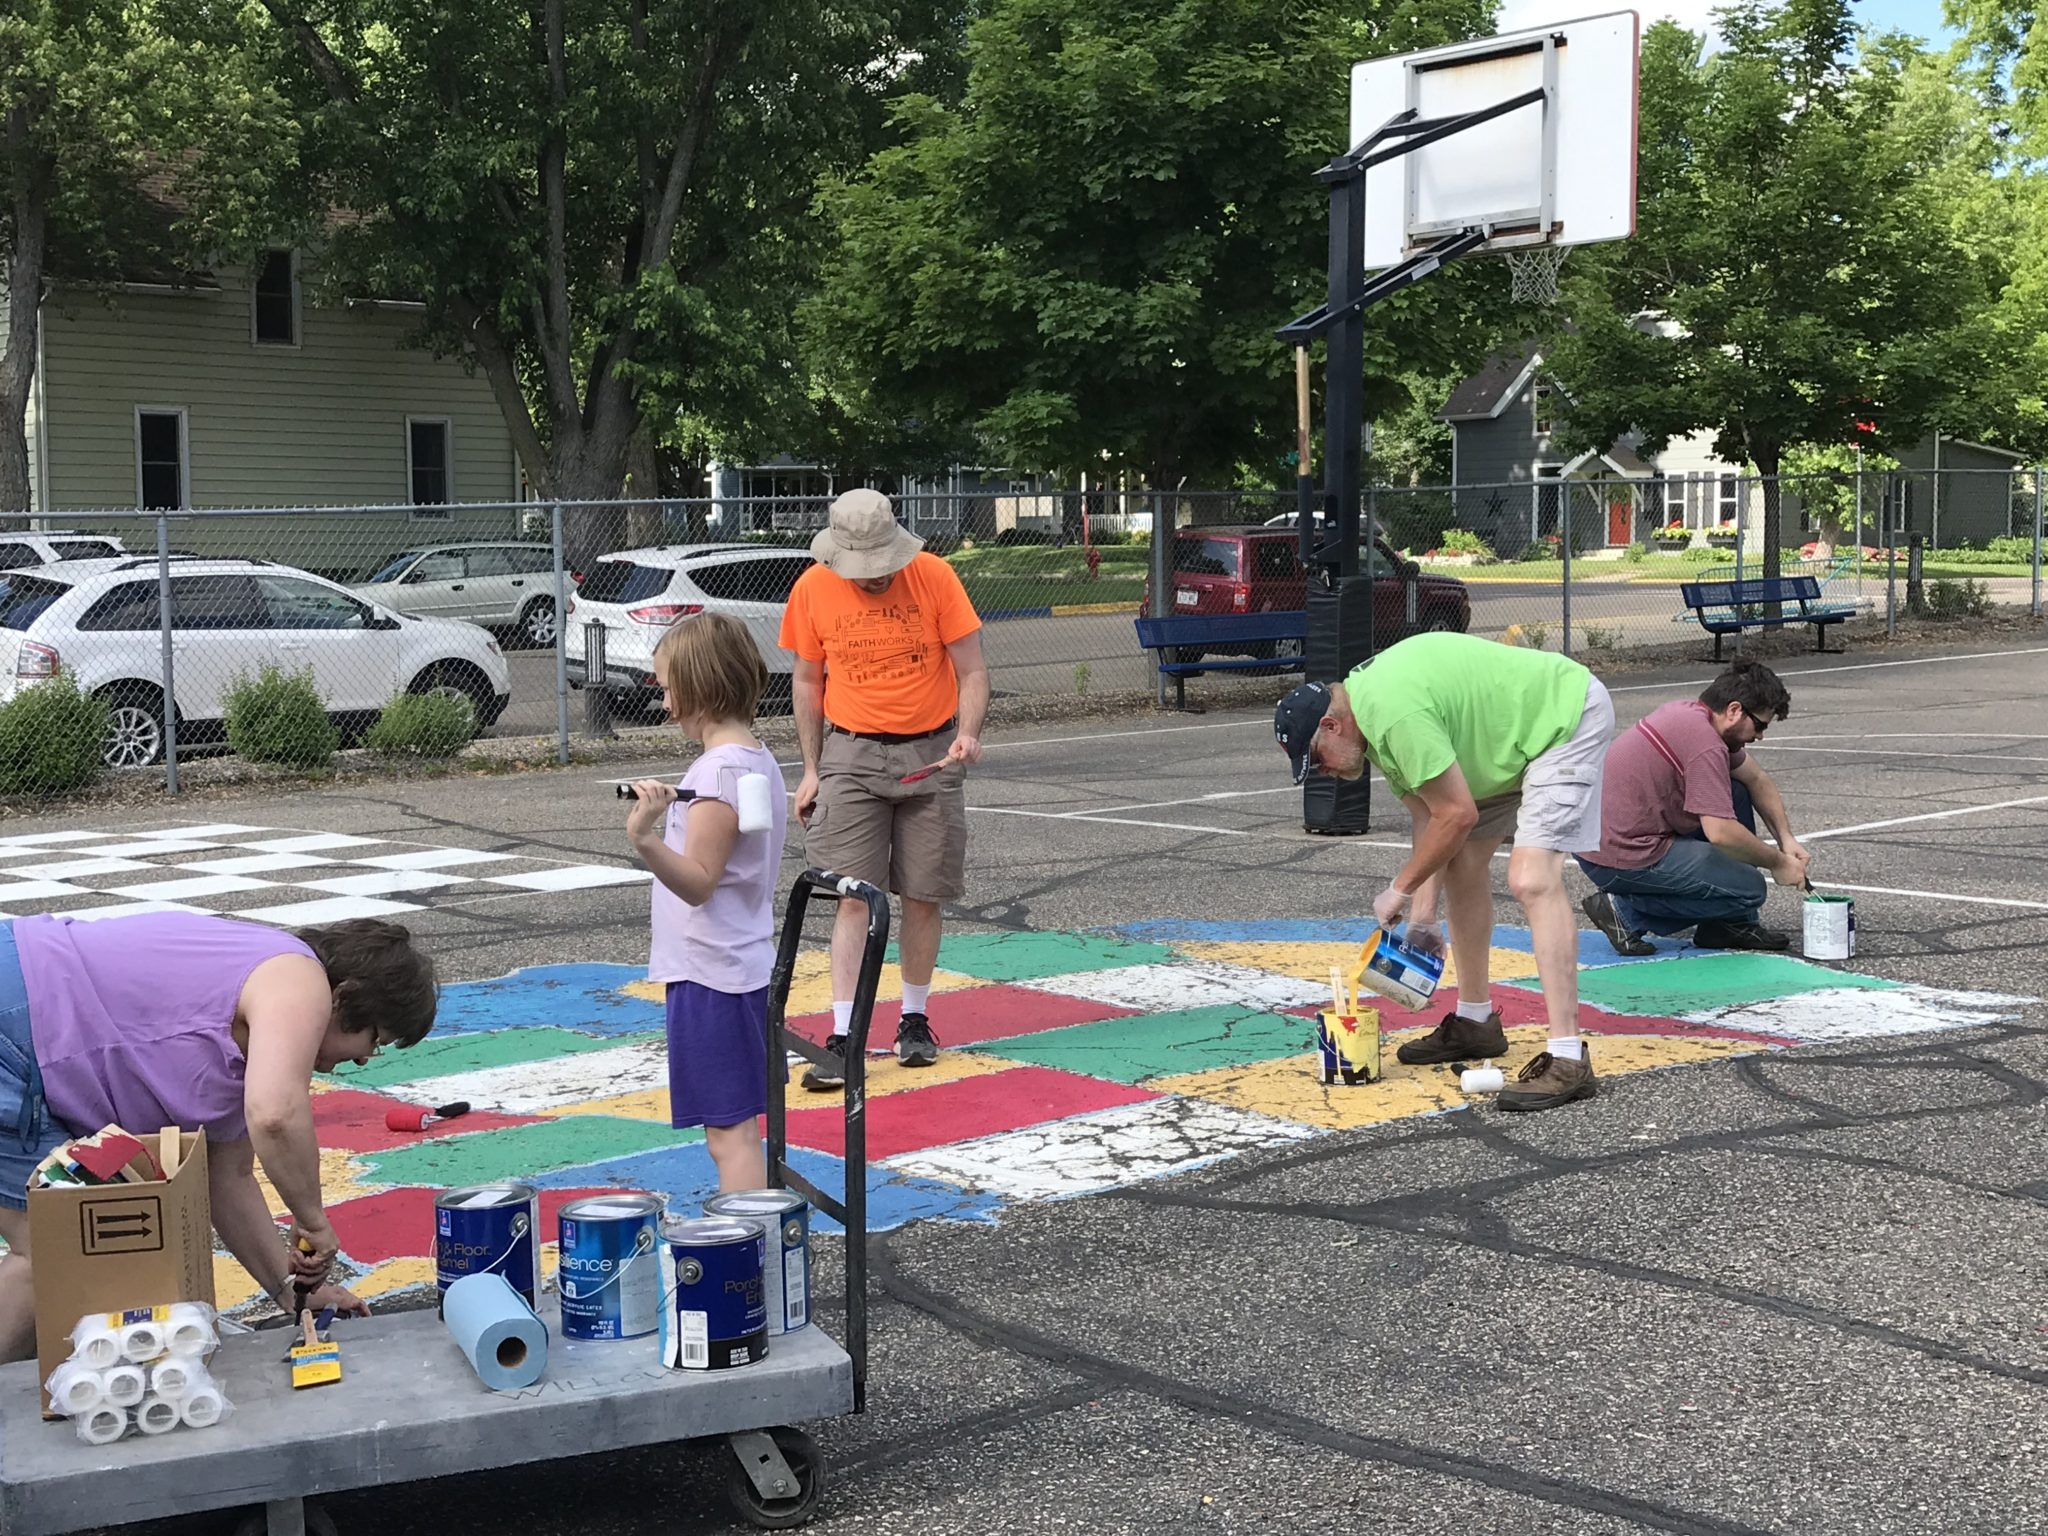 A group of children and adults painting the United States map on the playground pavement.